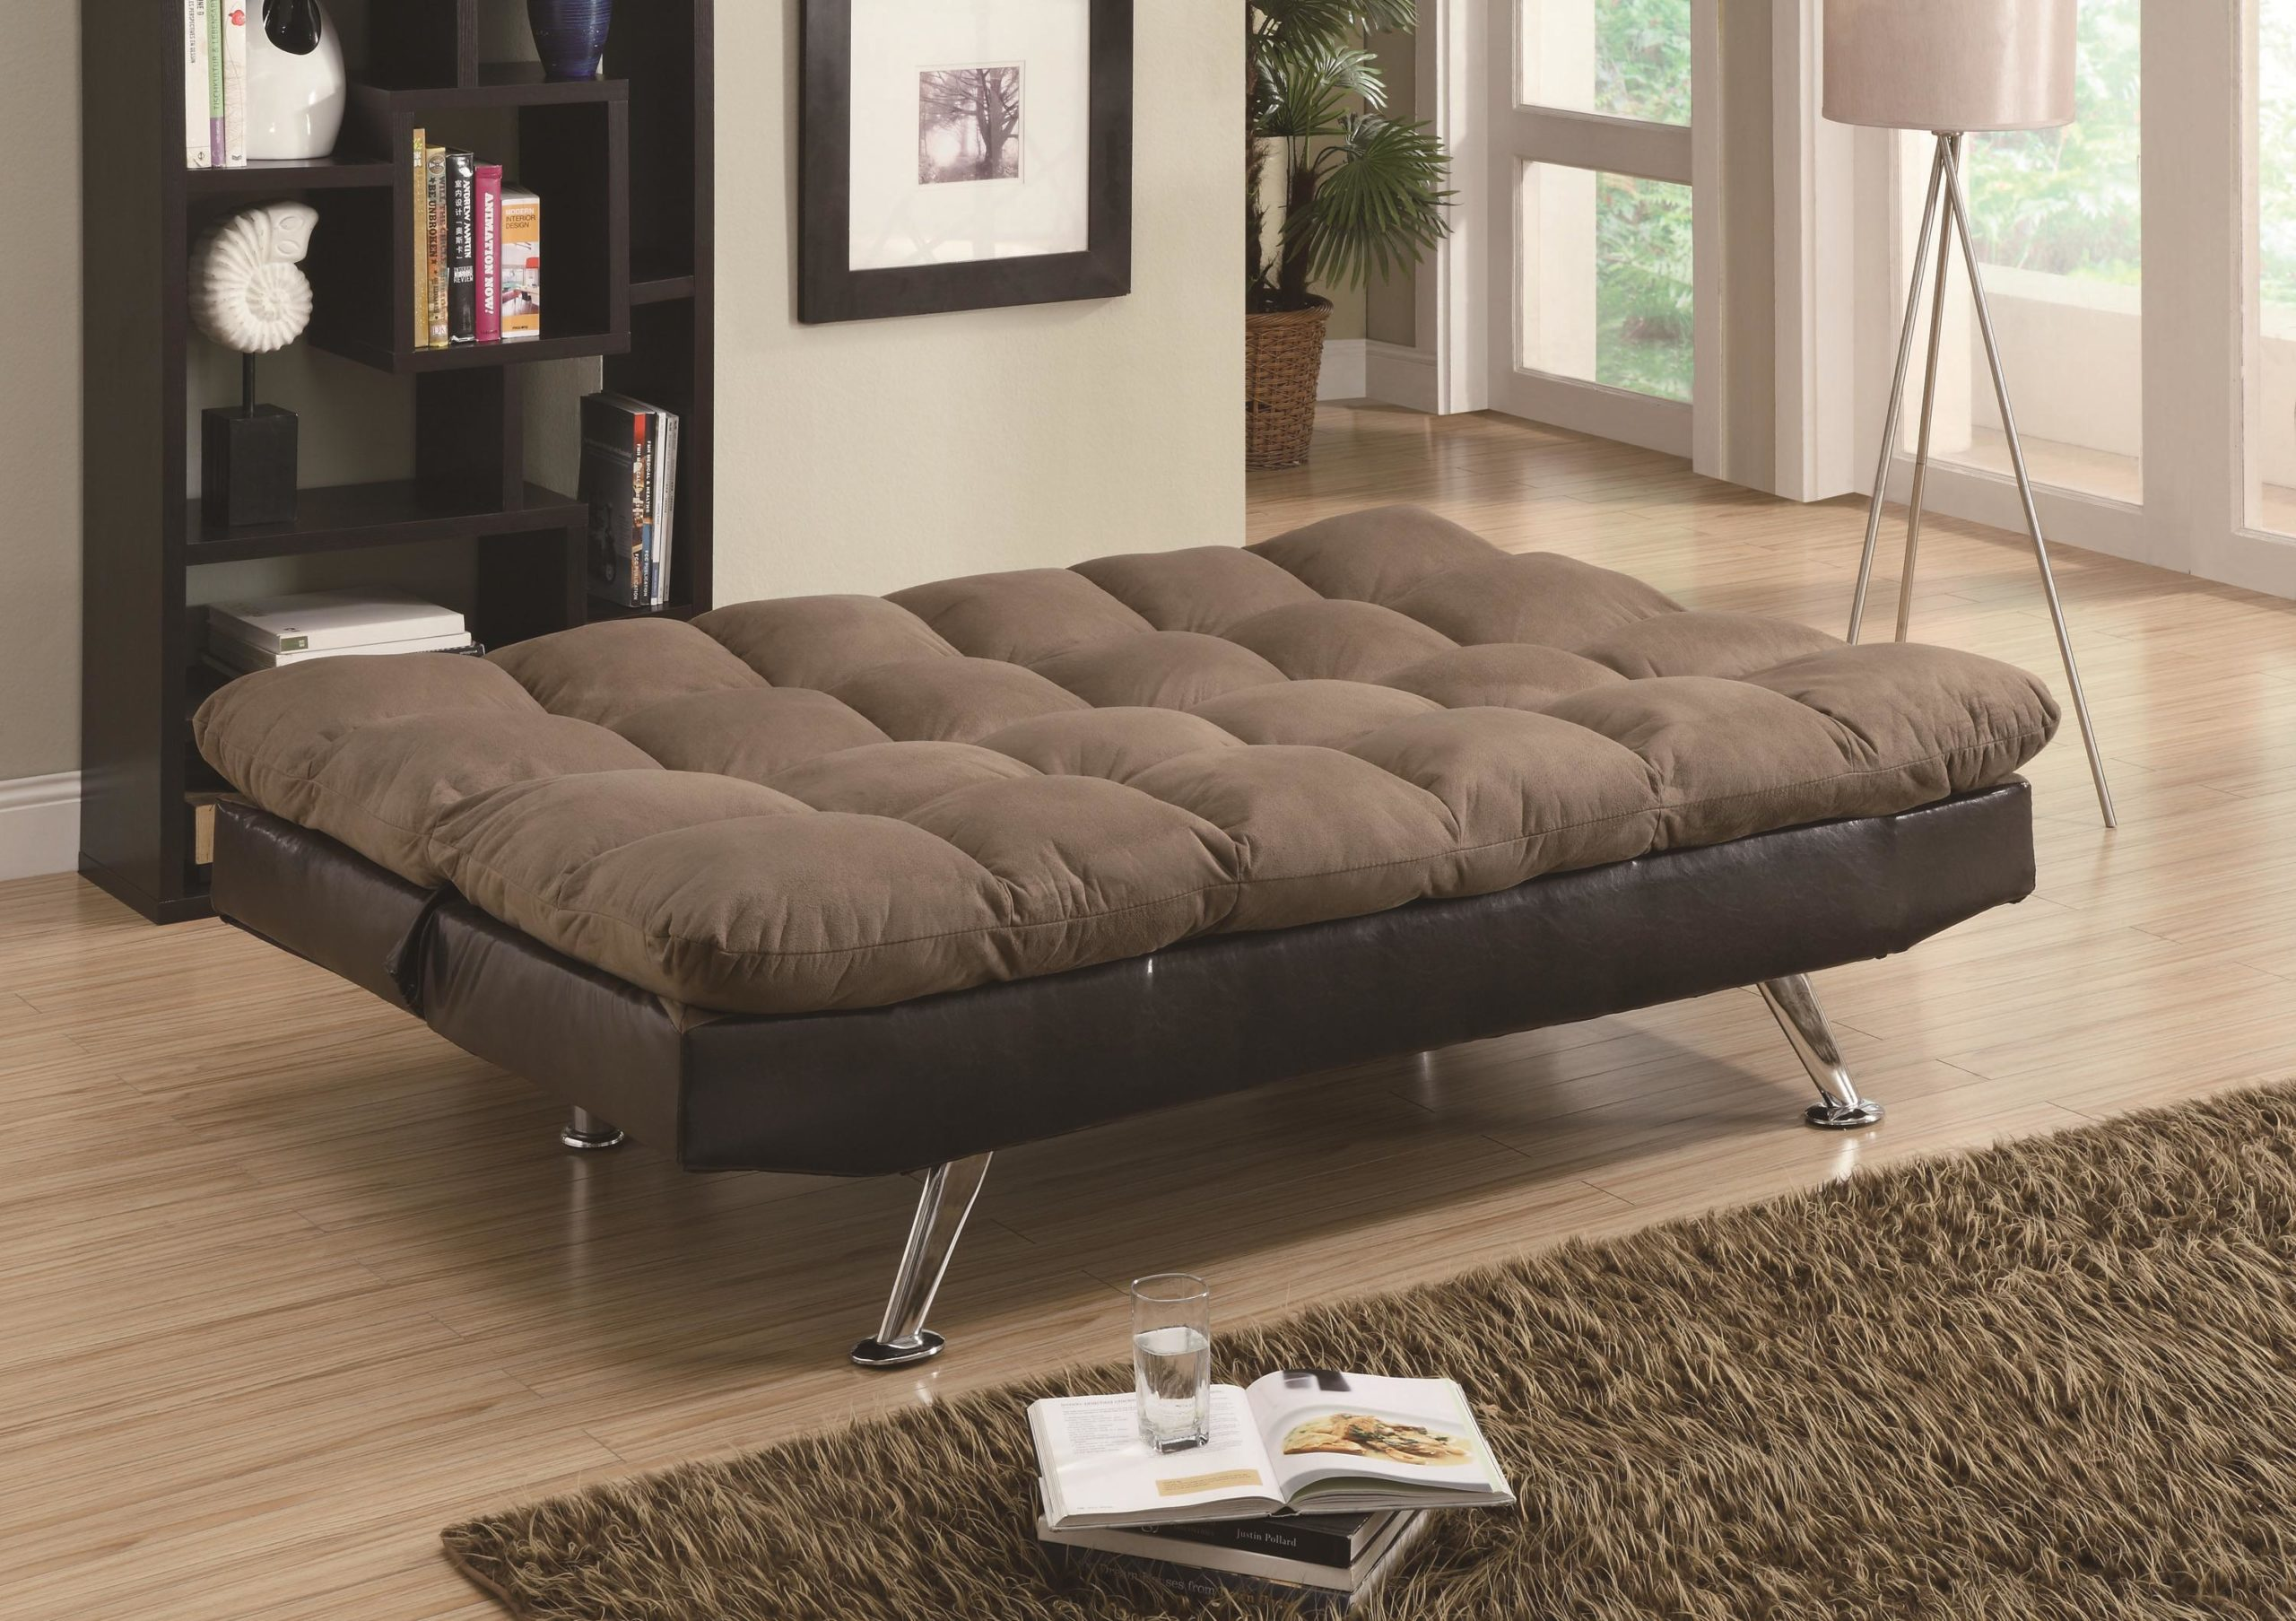 Contemporary Brown Microfiber amd Vinyl Sofa Bed in down position